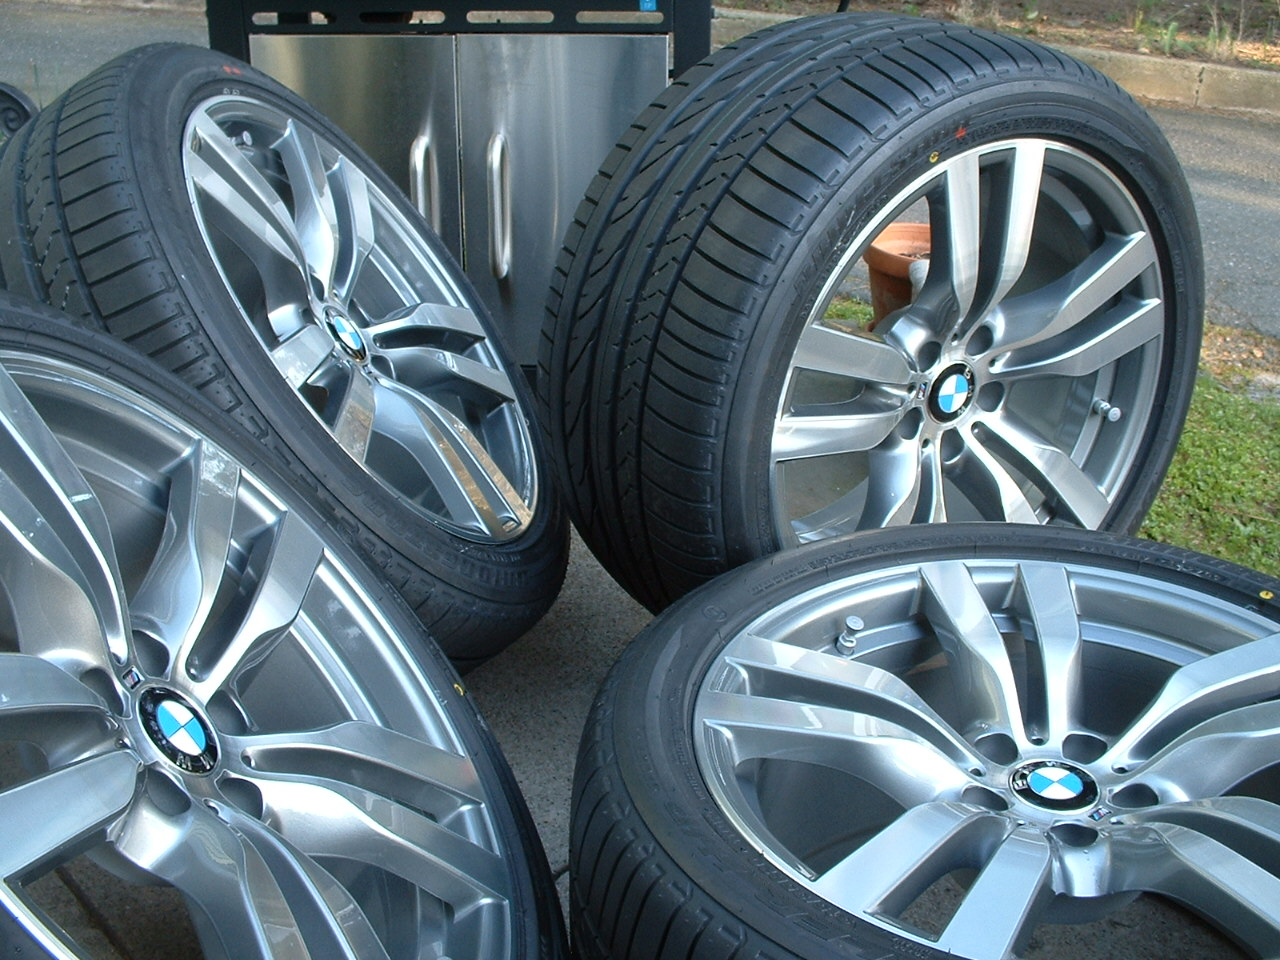 2010 Bmw X6m Factory 20 Quot Wheels Tires Amp Tpms New